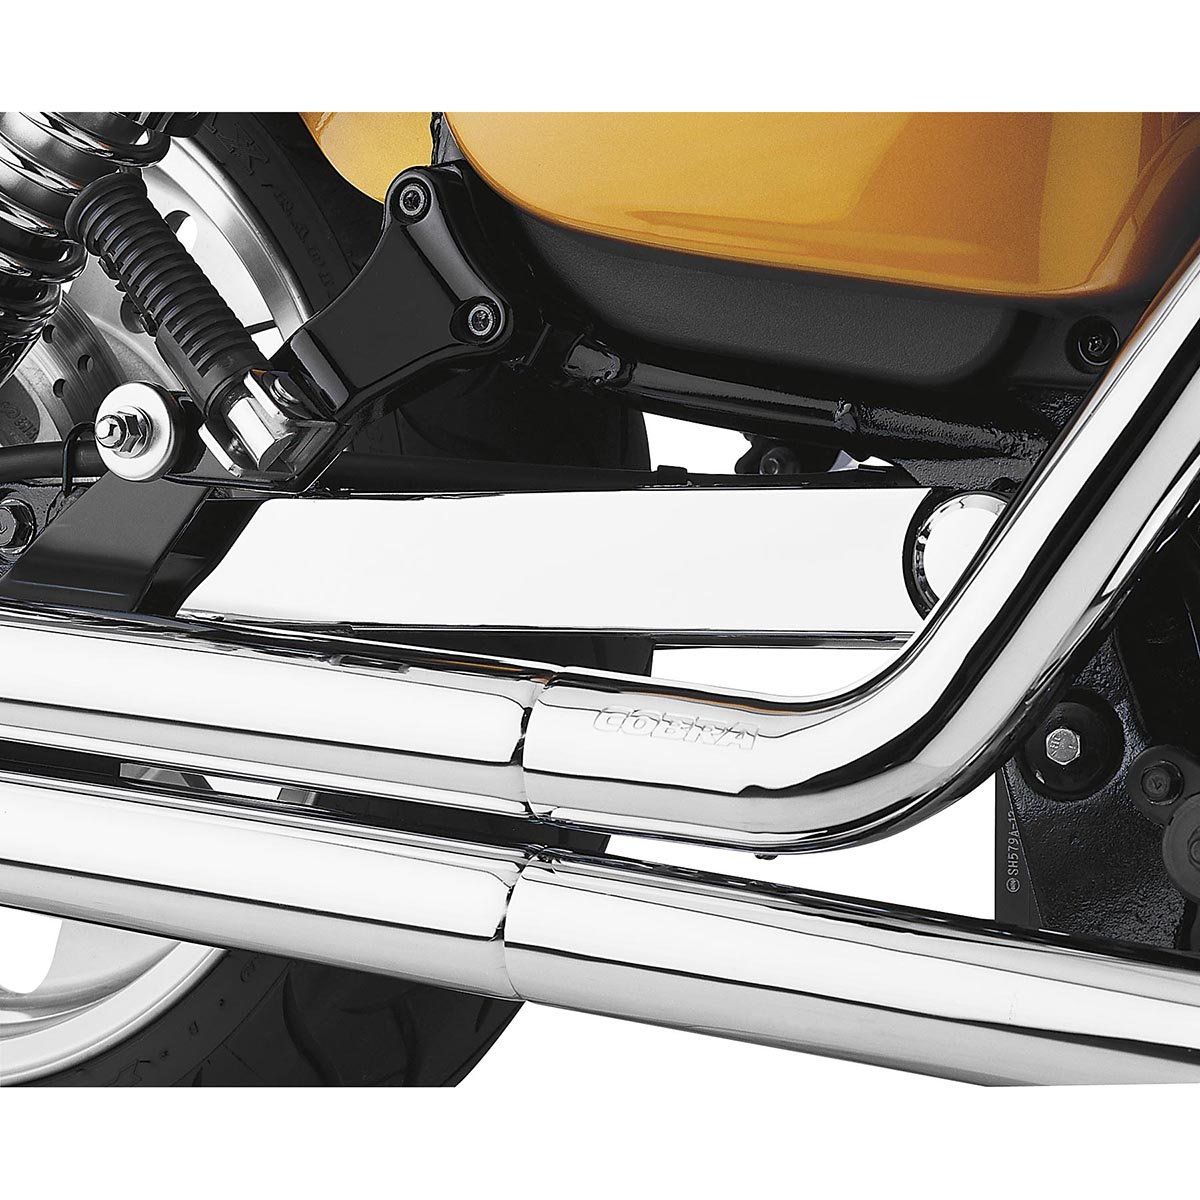 Get it delivered to your door - COBRA Swingarm Cover for SUZUKI Boulevard VZR 1800 M109R(06-14) & 1800N M109R2(08-09) & 1800N M109RB Boss (14-16) & 1800Z M109RZ Limited(07-14) - #06-0846 - 1300 (EGP)